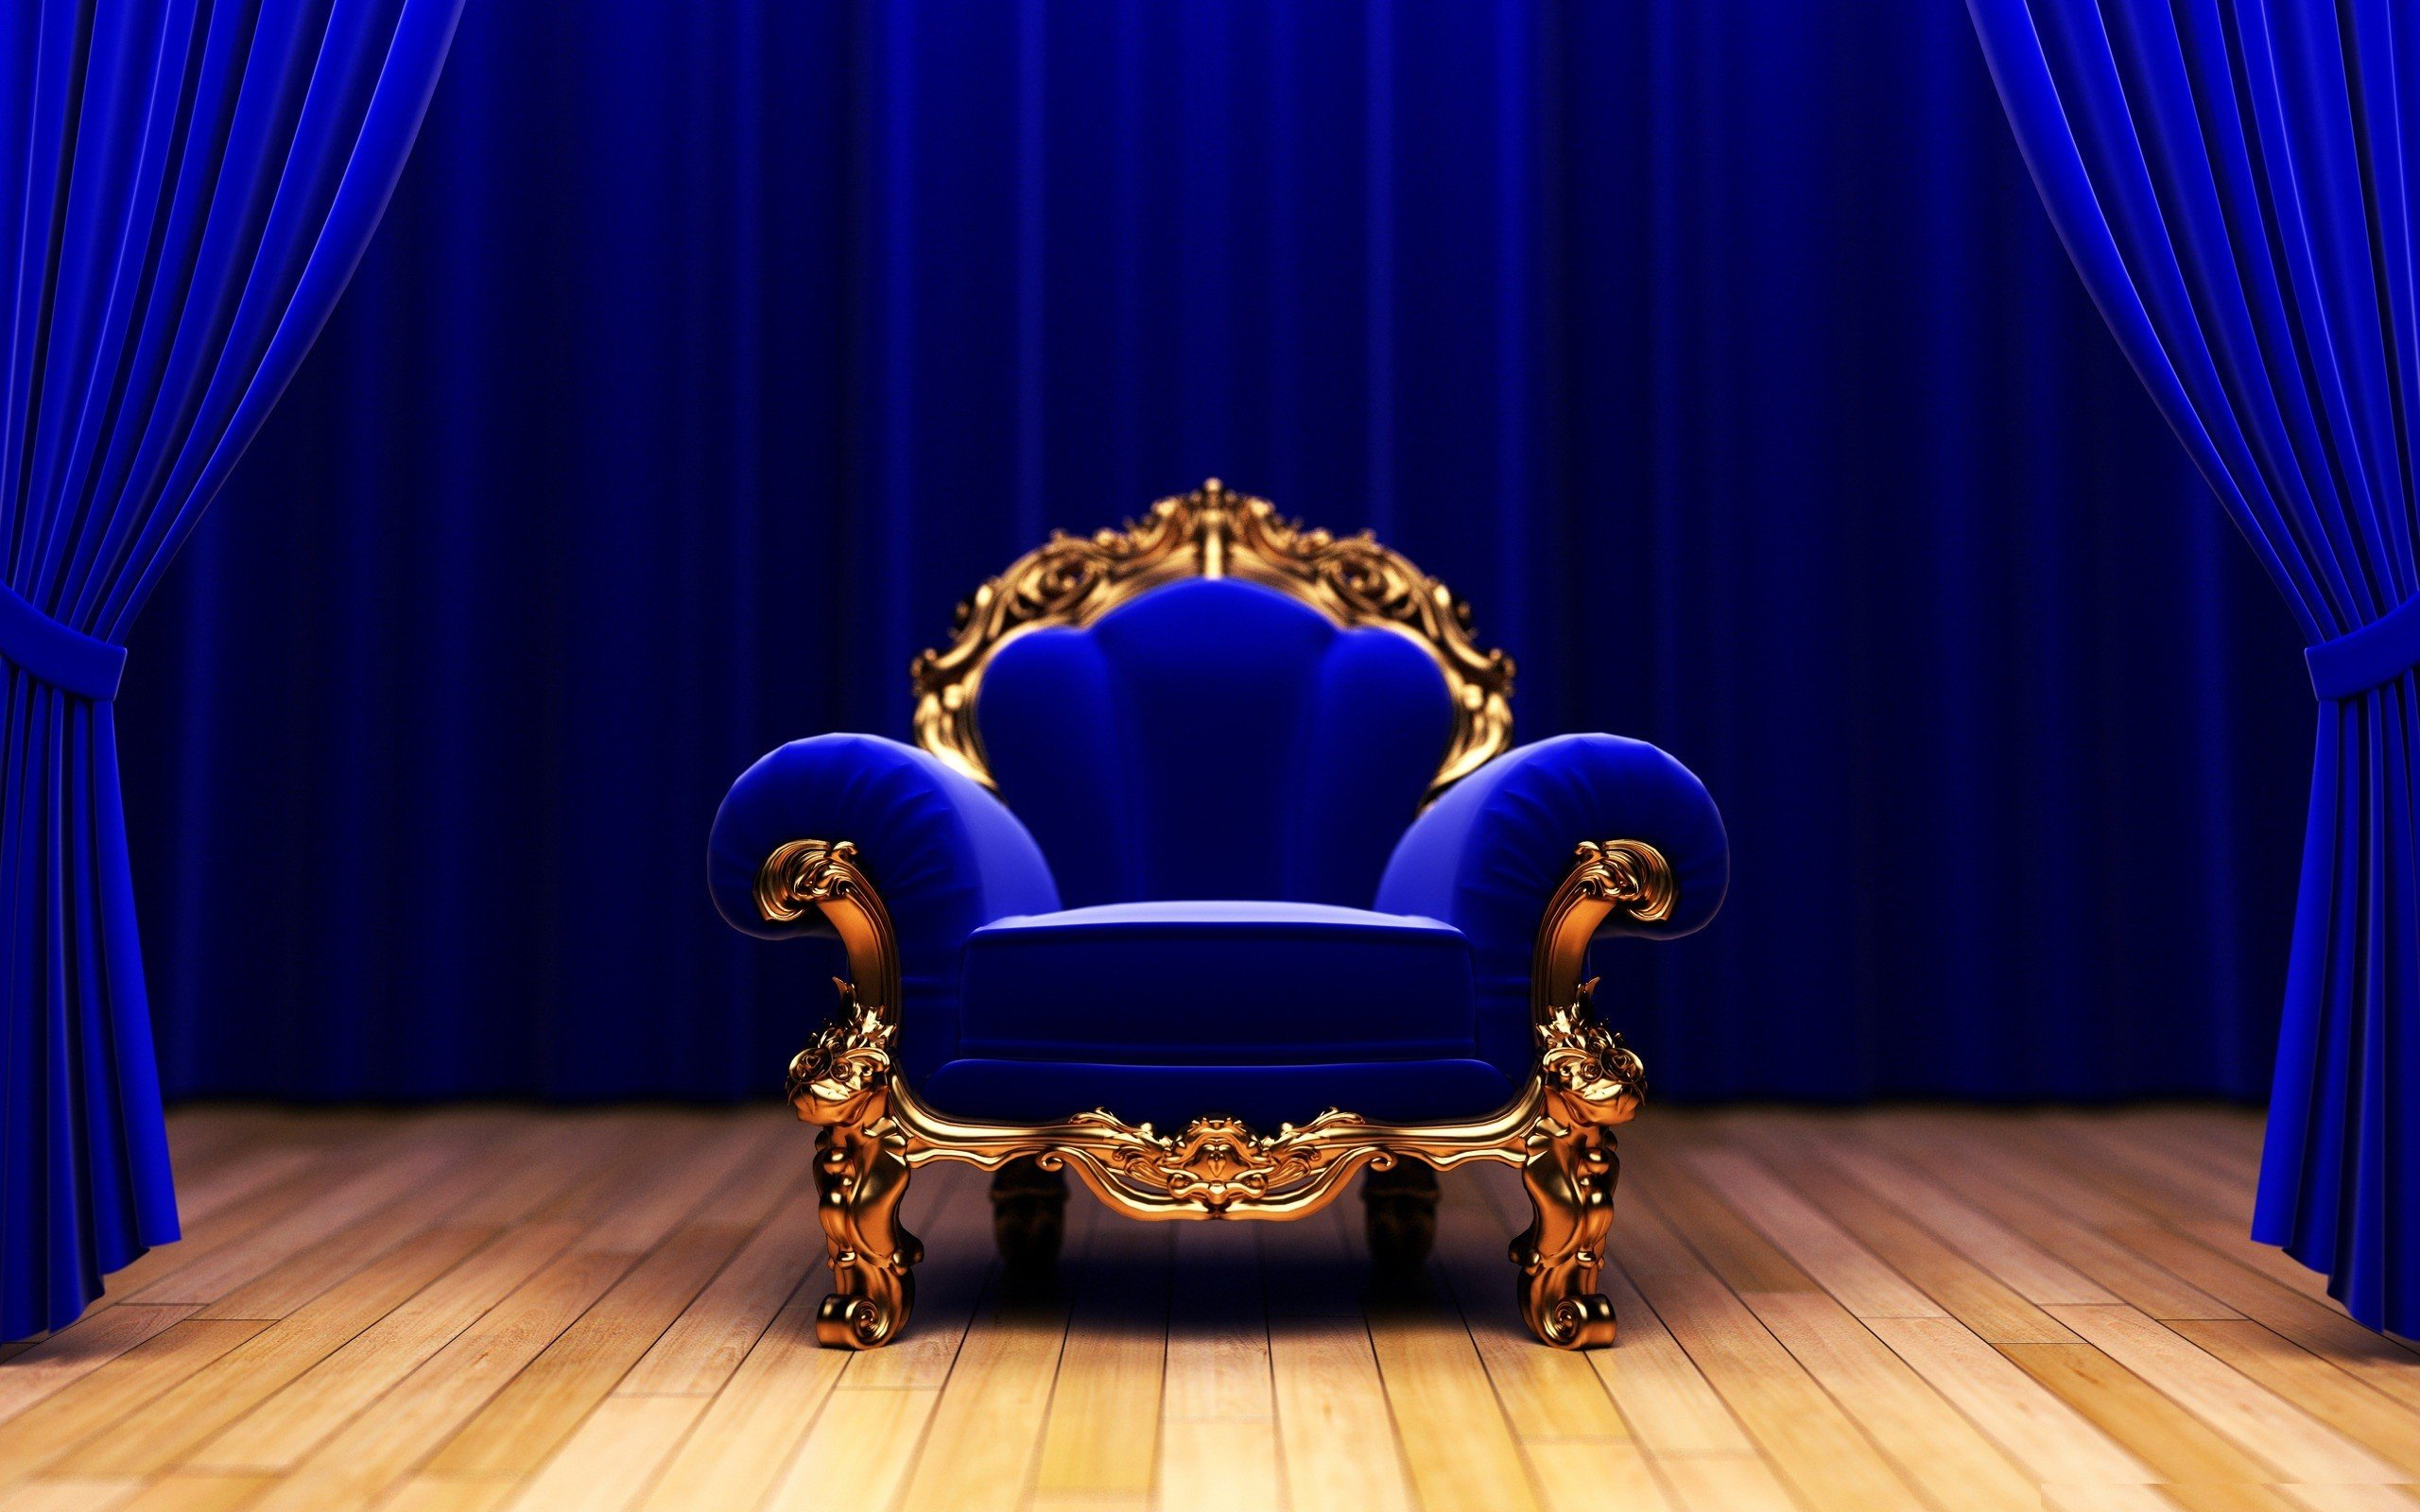 Blue Couch Studio King Armchair Wallpaper 2560x1600